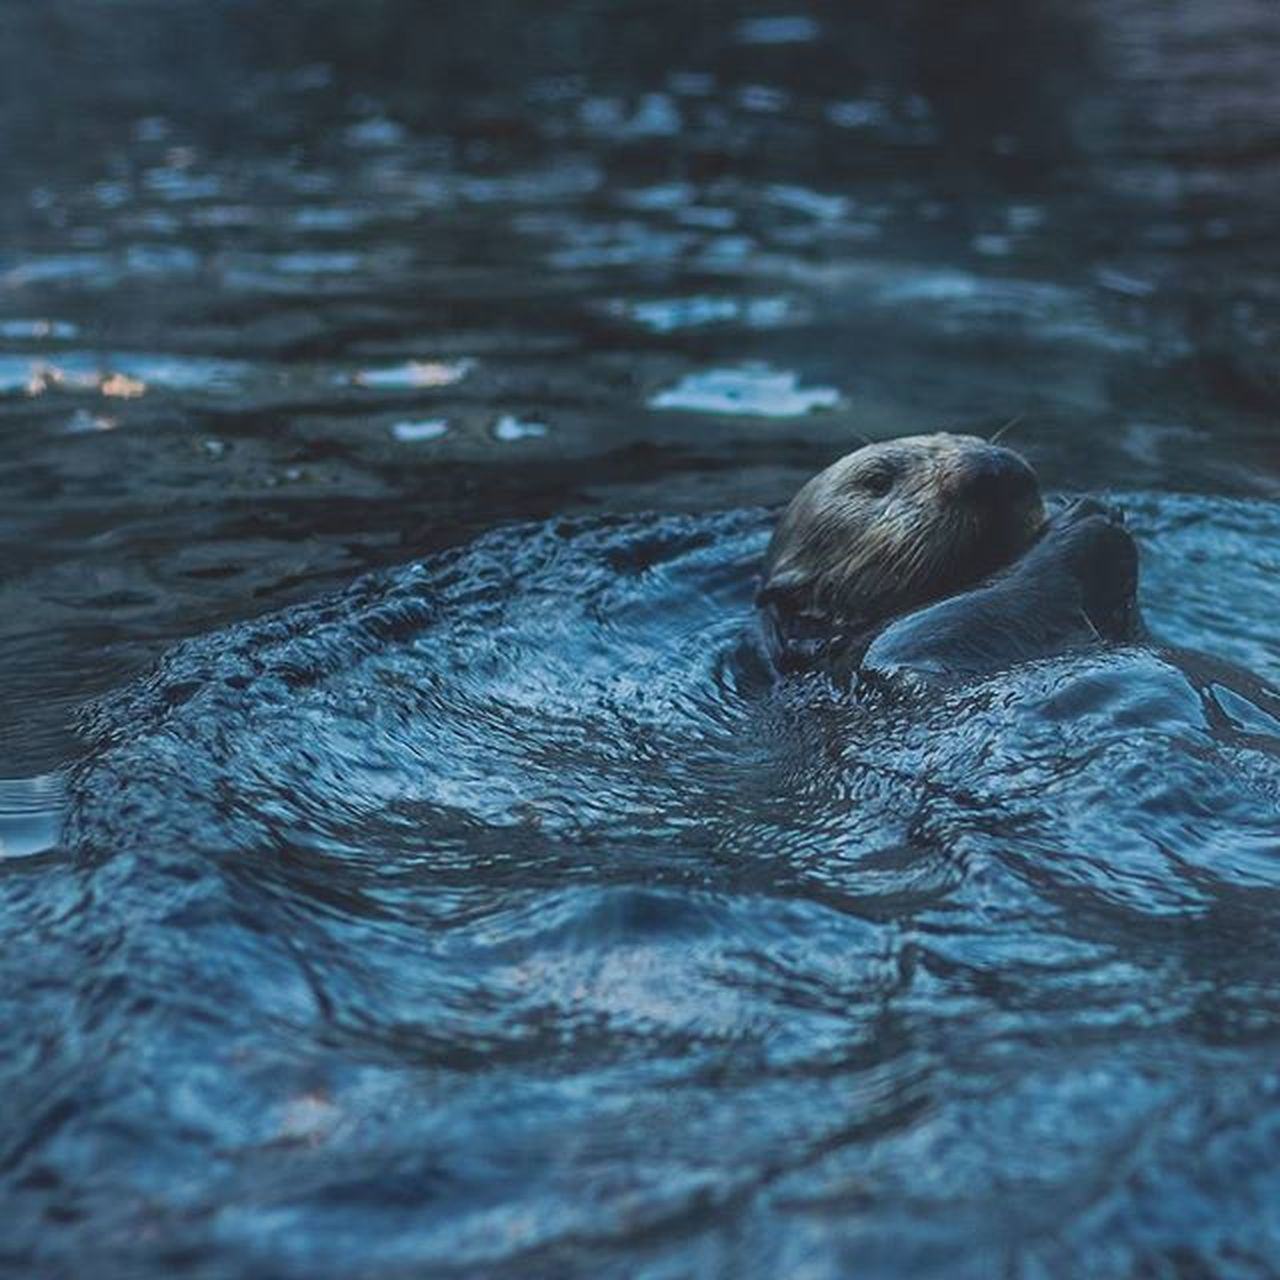 water, swimming, real people, waterfront, one person, lifestyles, day, outdoors, swimming pool, rear view, childhood, leisure activity, headshot, boys, nature, mammal, people